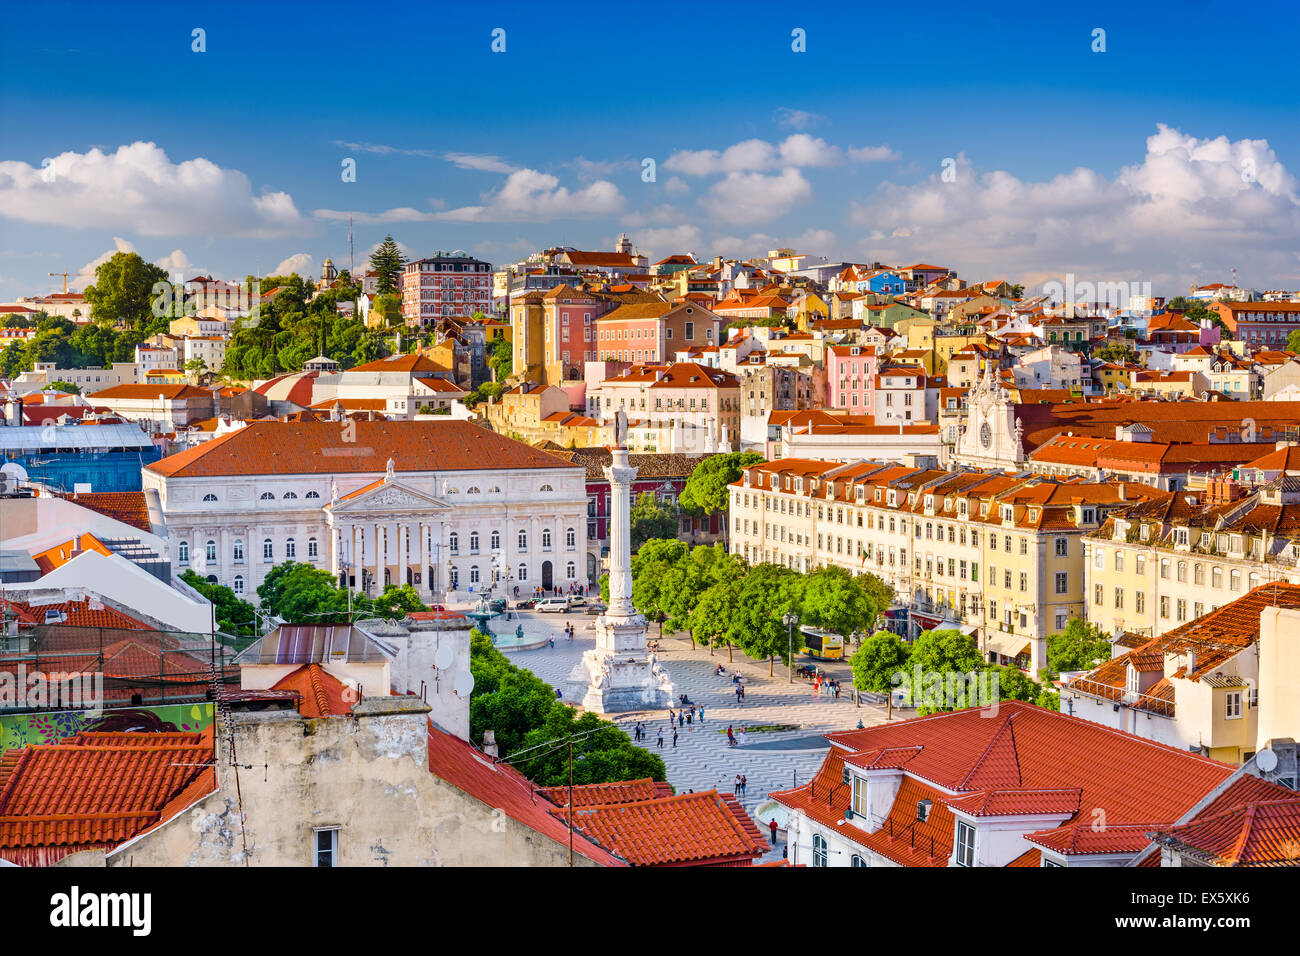 Lisbon, Portugal skyline view over Rossio Square. Stock Photo